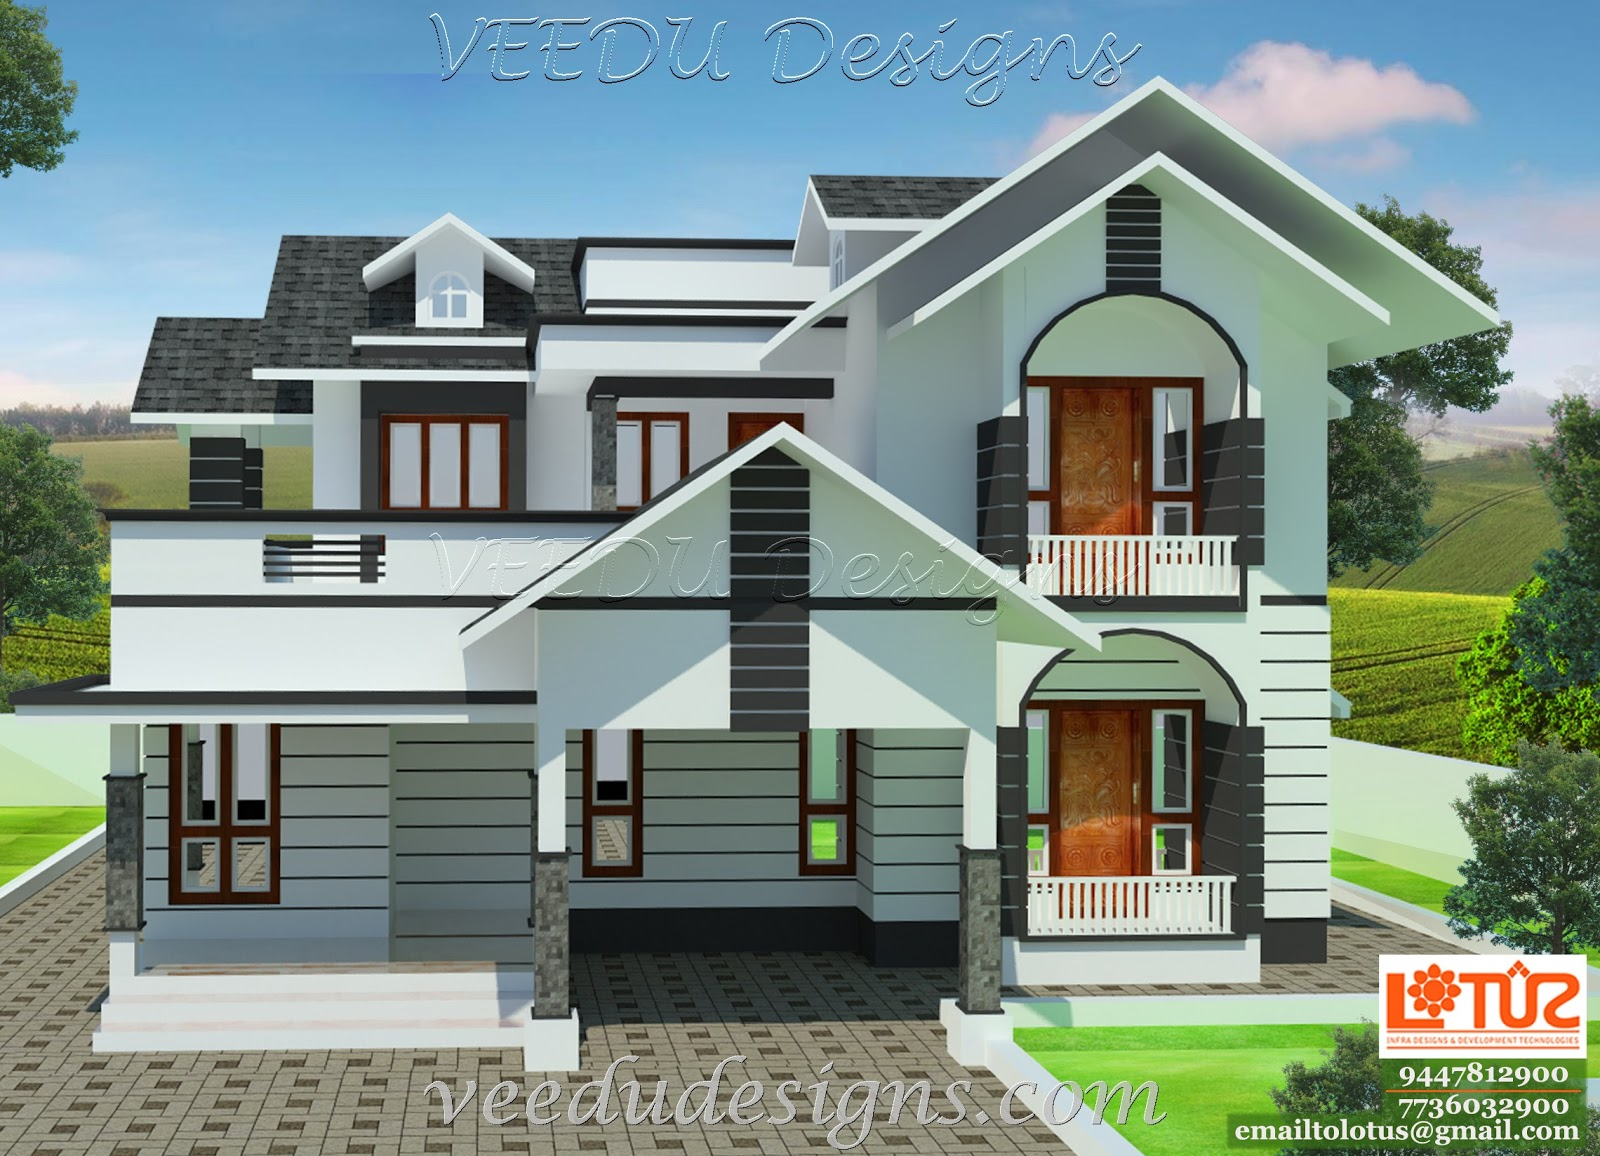 Veedu designs joy studio design gallery best design for Manorama veedu photos